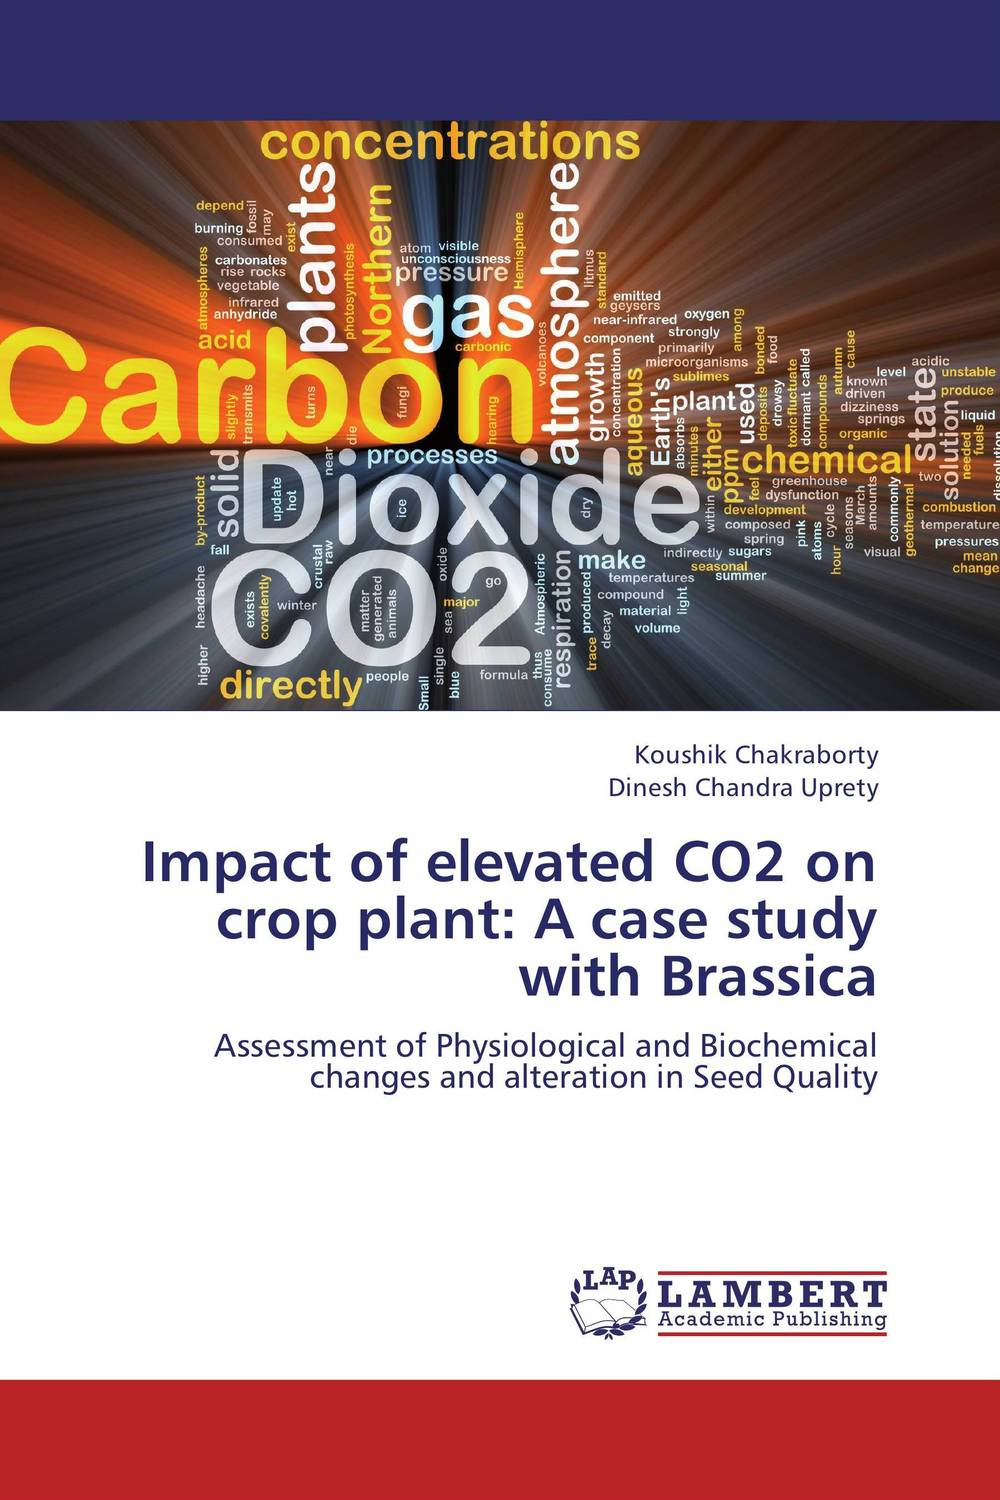 Impact of elevated CO2 on crop plant: A case study with Brassica subodh kumar and rakesh kumar response of organic nutrition and nitrogen on mustard brassica juncea